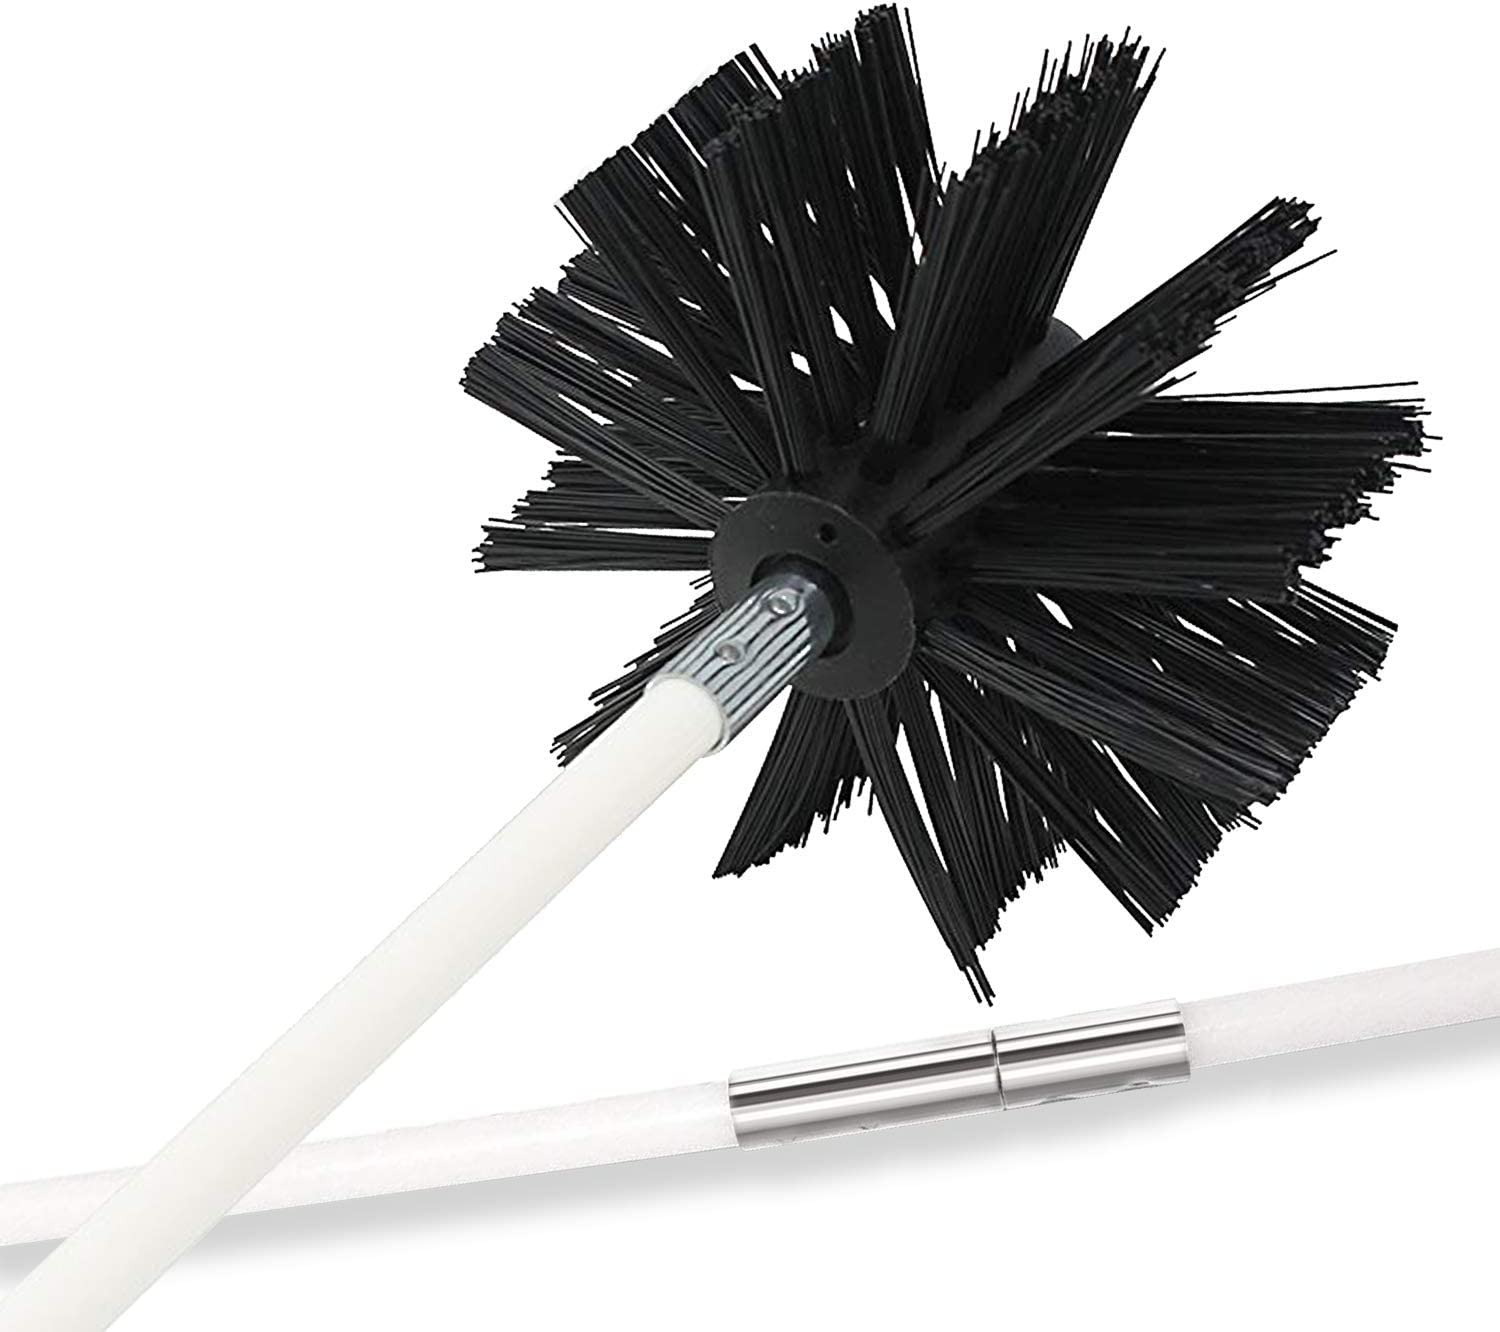 Holikme 15 Feet Dryer Vent Cleaning Brush, Lint Remover, Extends Up to 15 Feet, Synthetic Brush Head, Use with or Without a Power Drill